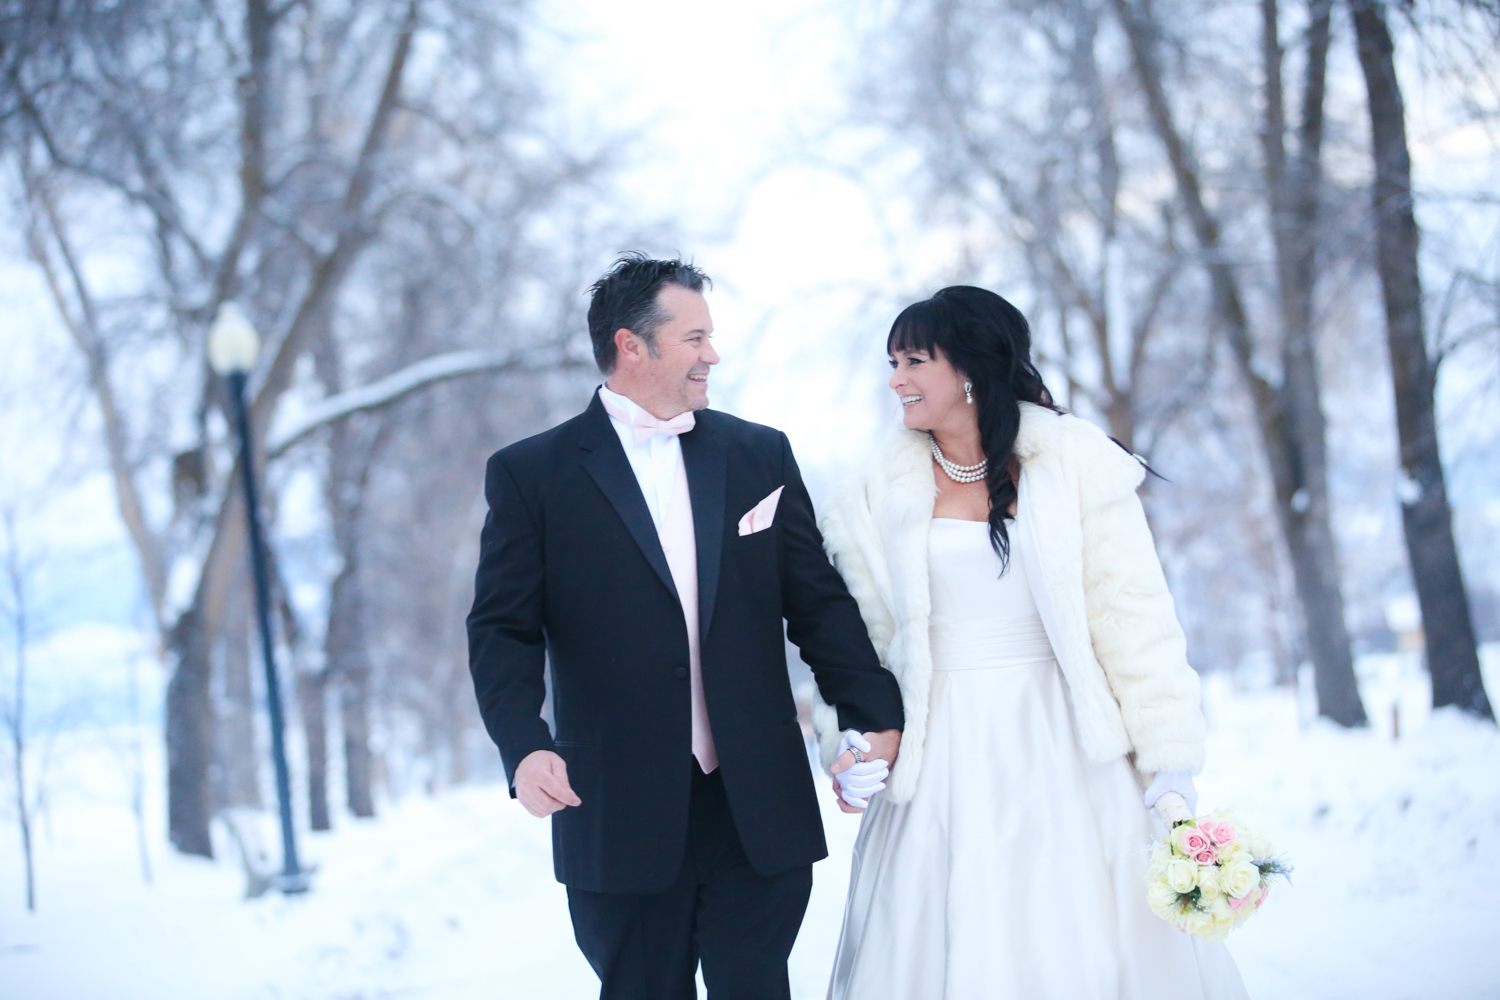 Winter wedding at the Daly Mansion-6281.jpg